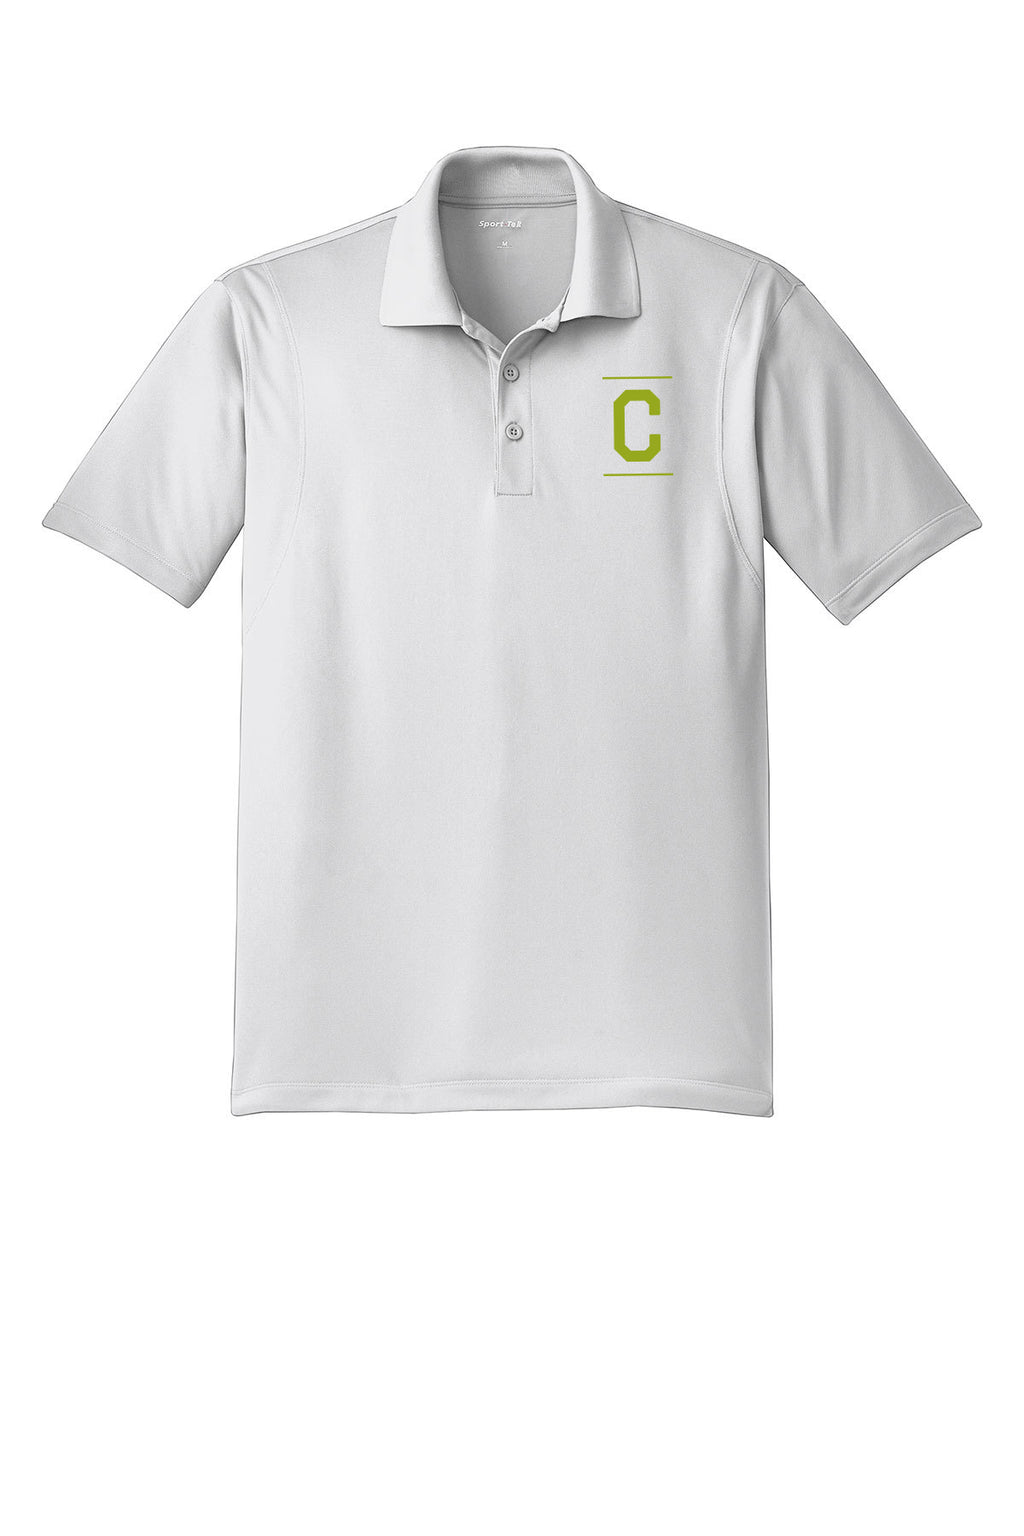 Casitas Rowing Embroidered Performance Men's Polo